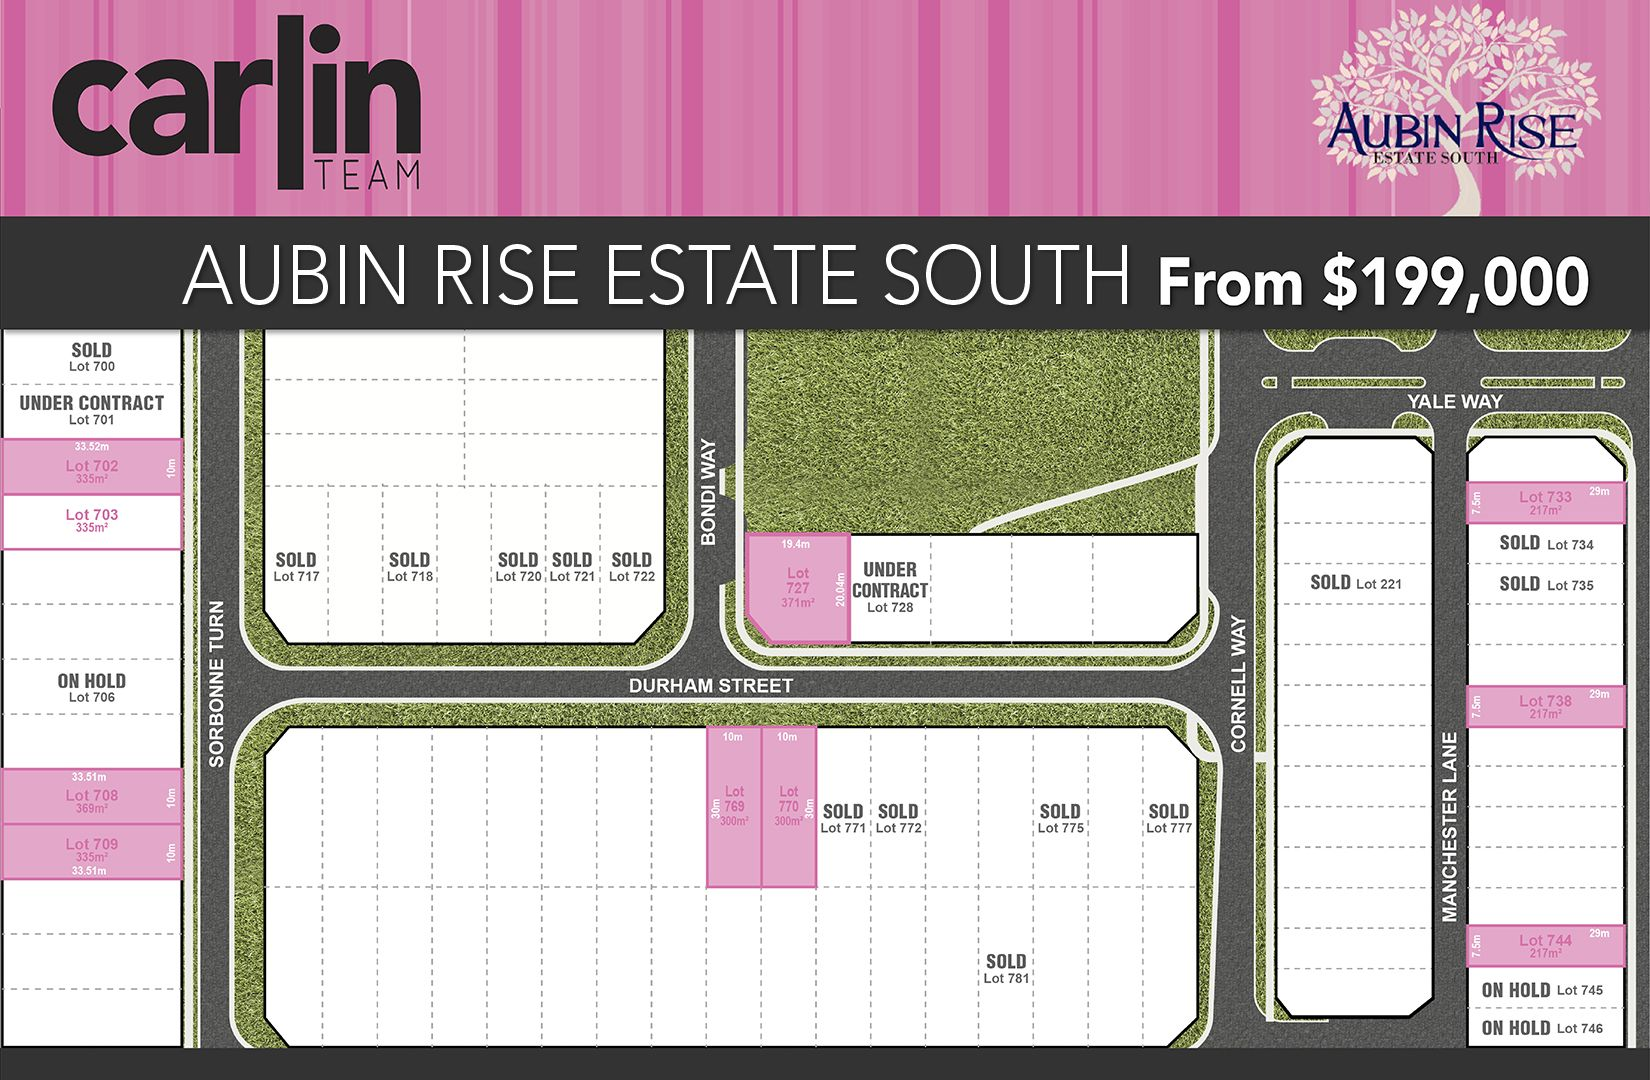 61 (Lot 702) Sorbonne Turn, Aubin Grove WA 6164, Image 1